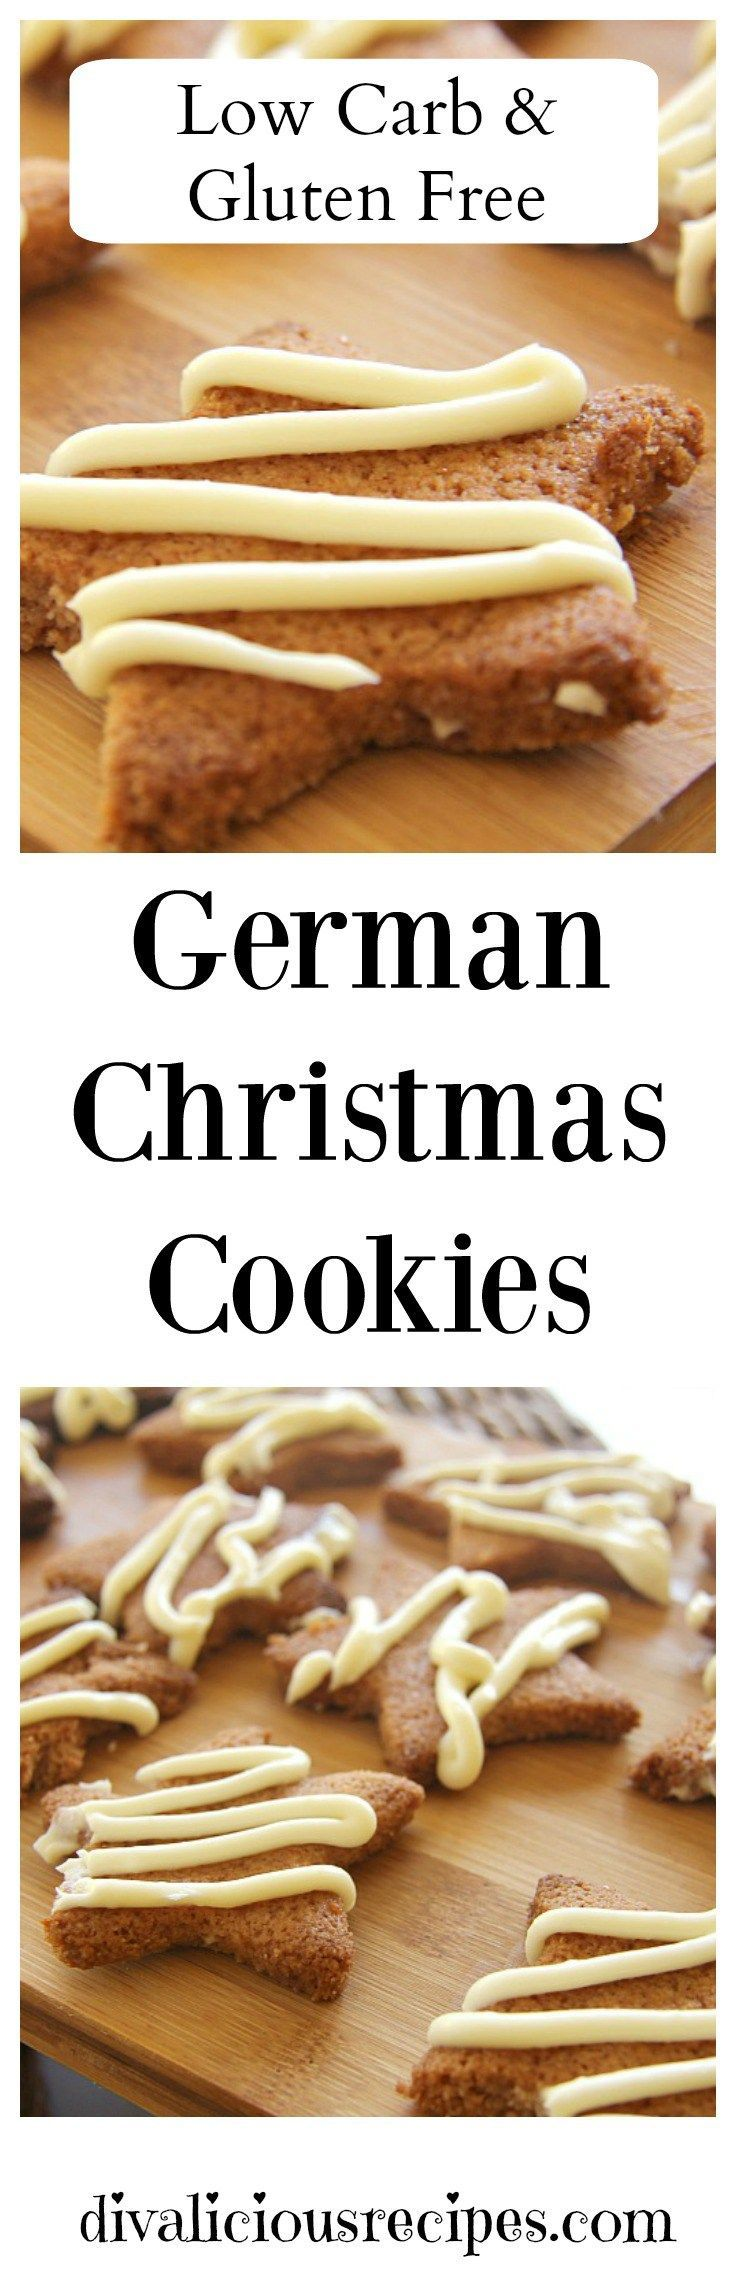 This is a Christmas cookies recipes that is loosely based on a German cookie recipe.   Zimtsterne are traditional cinnamon biscuits served at Christmas time in Germany.   The original recipe is gluten-free but I've tweaked it to make it low carb too. Reci